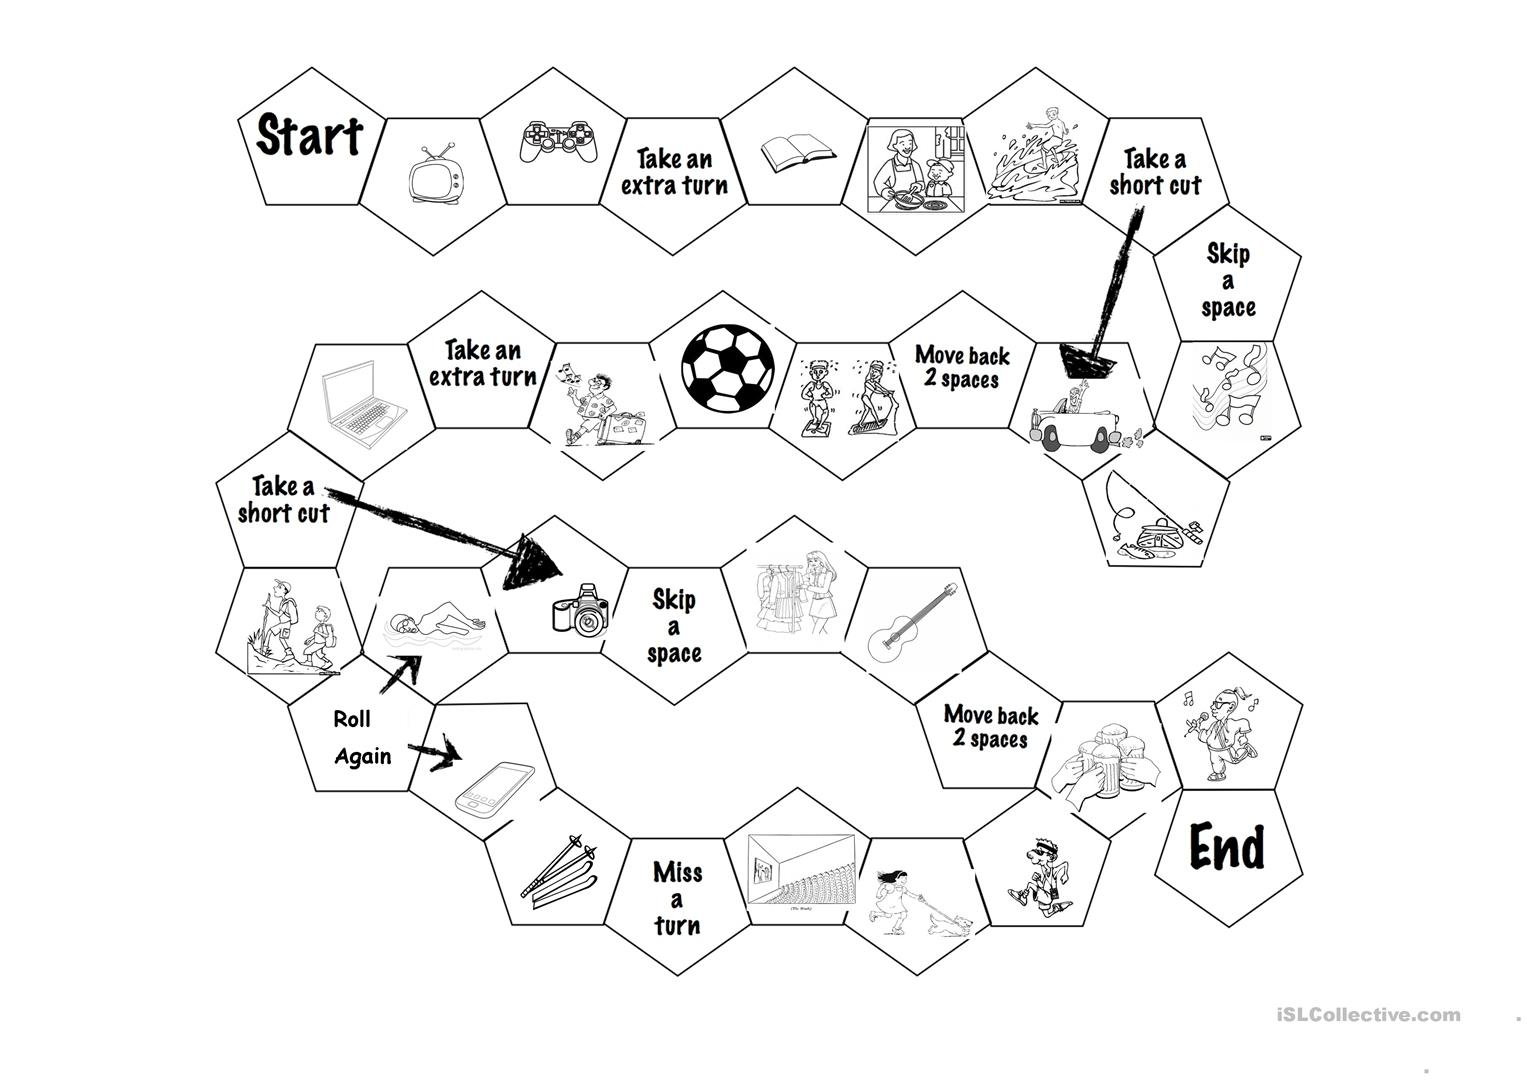 Hobbies Boardgame Worksheet